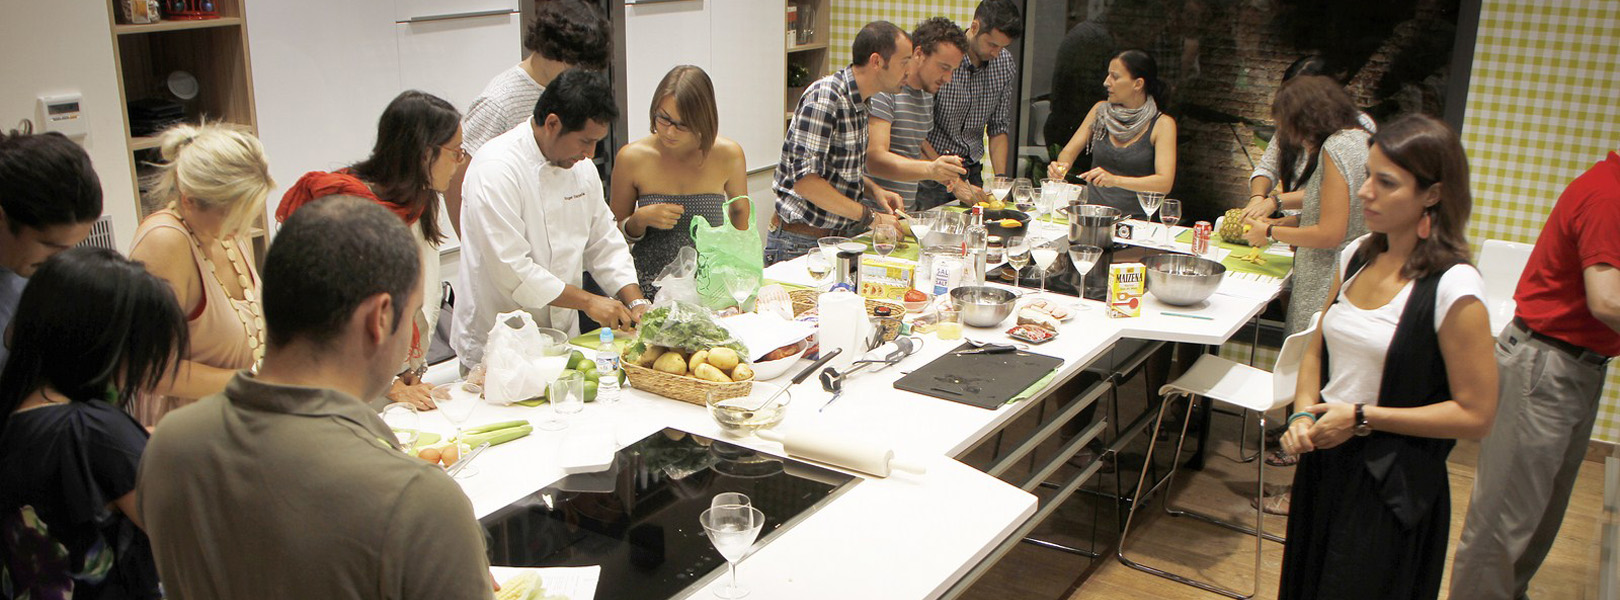 bcnKITCHEN   El Born 7